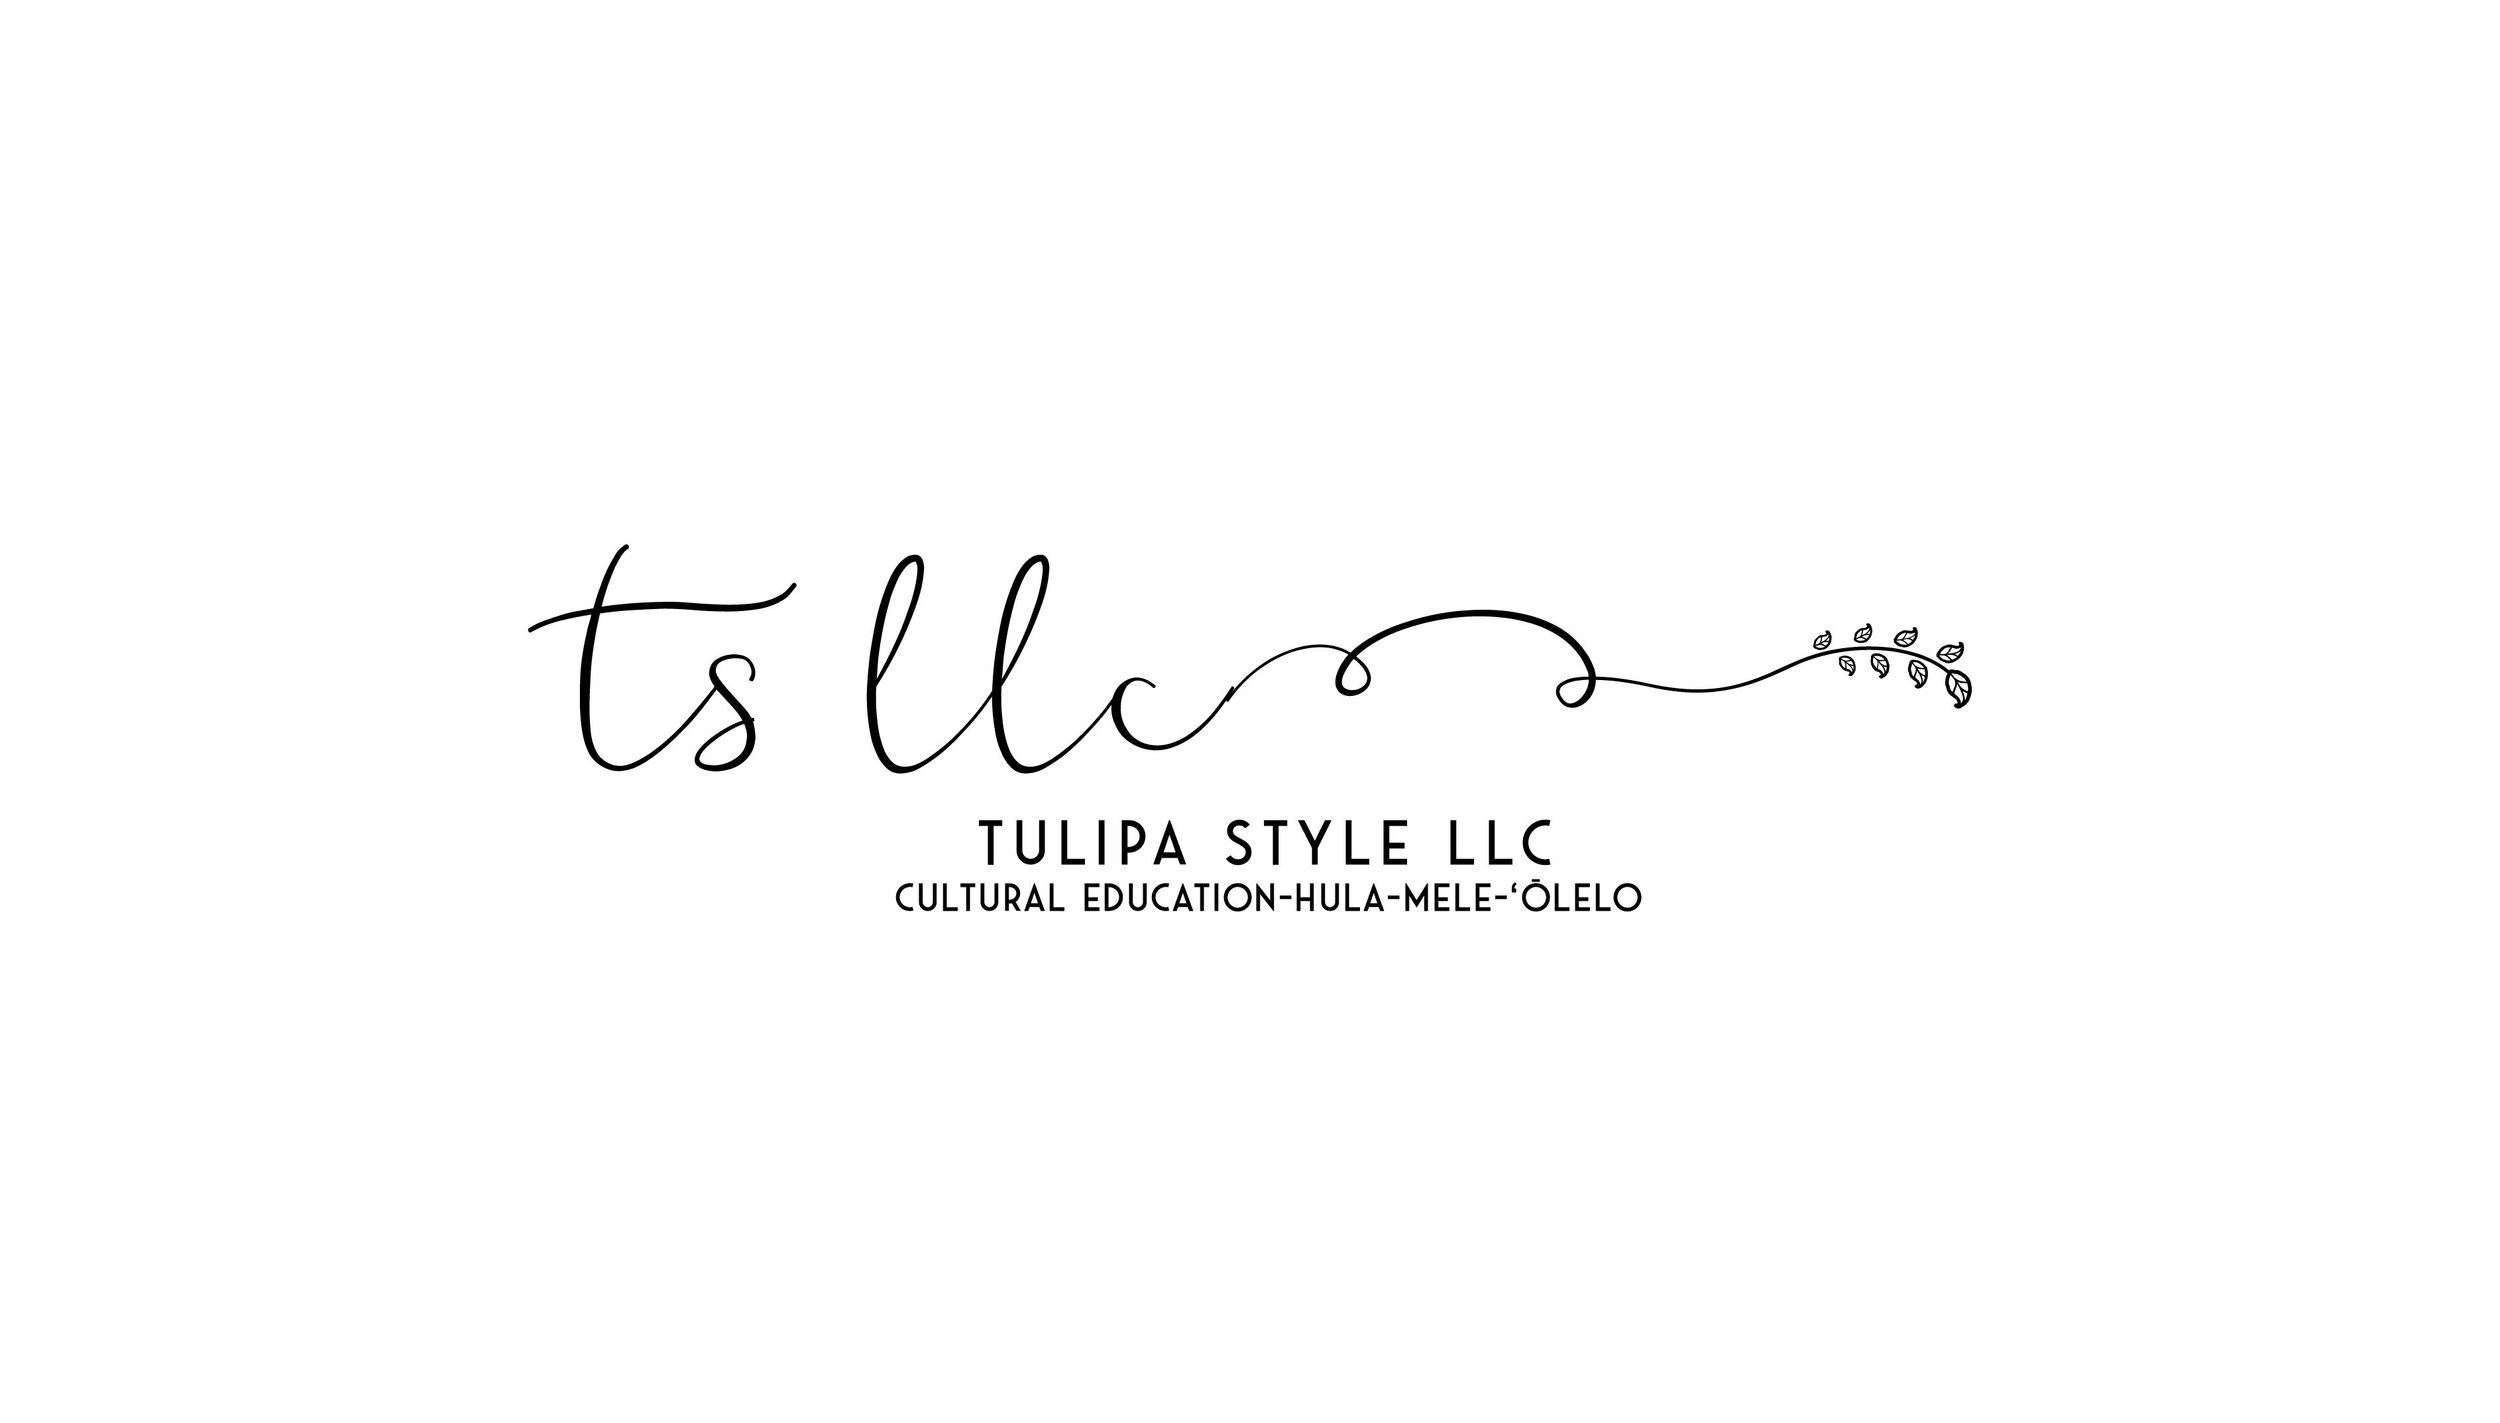 Tulipa Style LLC has been a Sponsor of Hōʻike Hawaiʻi for the past three years and we welcome them as a Sponsor again this year. Their sponsorship solely helps with the Hawaiʻi Judges. They pay for the airfare as well as other cost such as Meals & Transportation. They also runa Hawaiʻi Trip Raffle and proceeds also go towards this sponsorship.